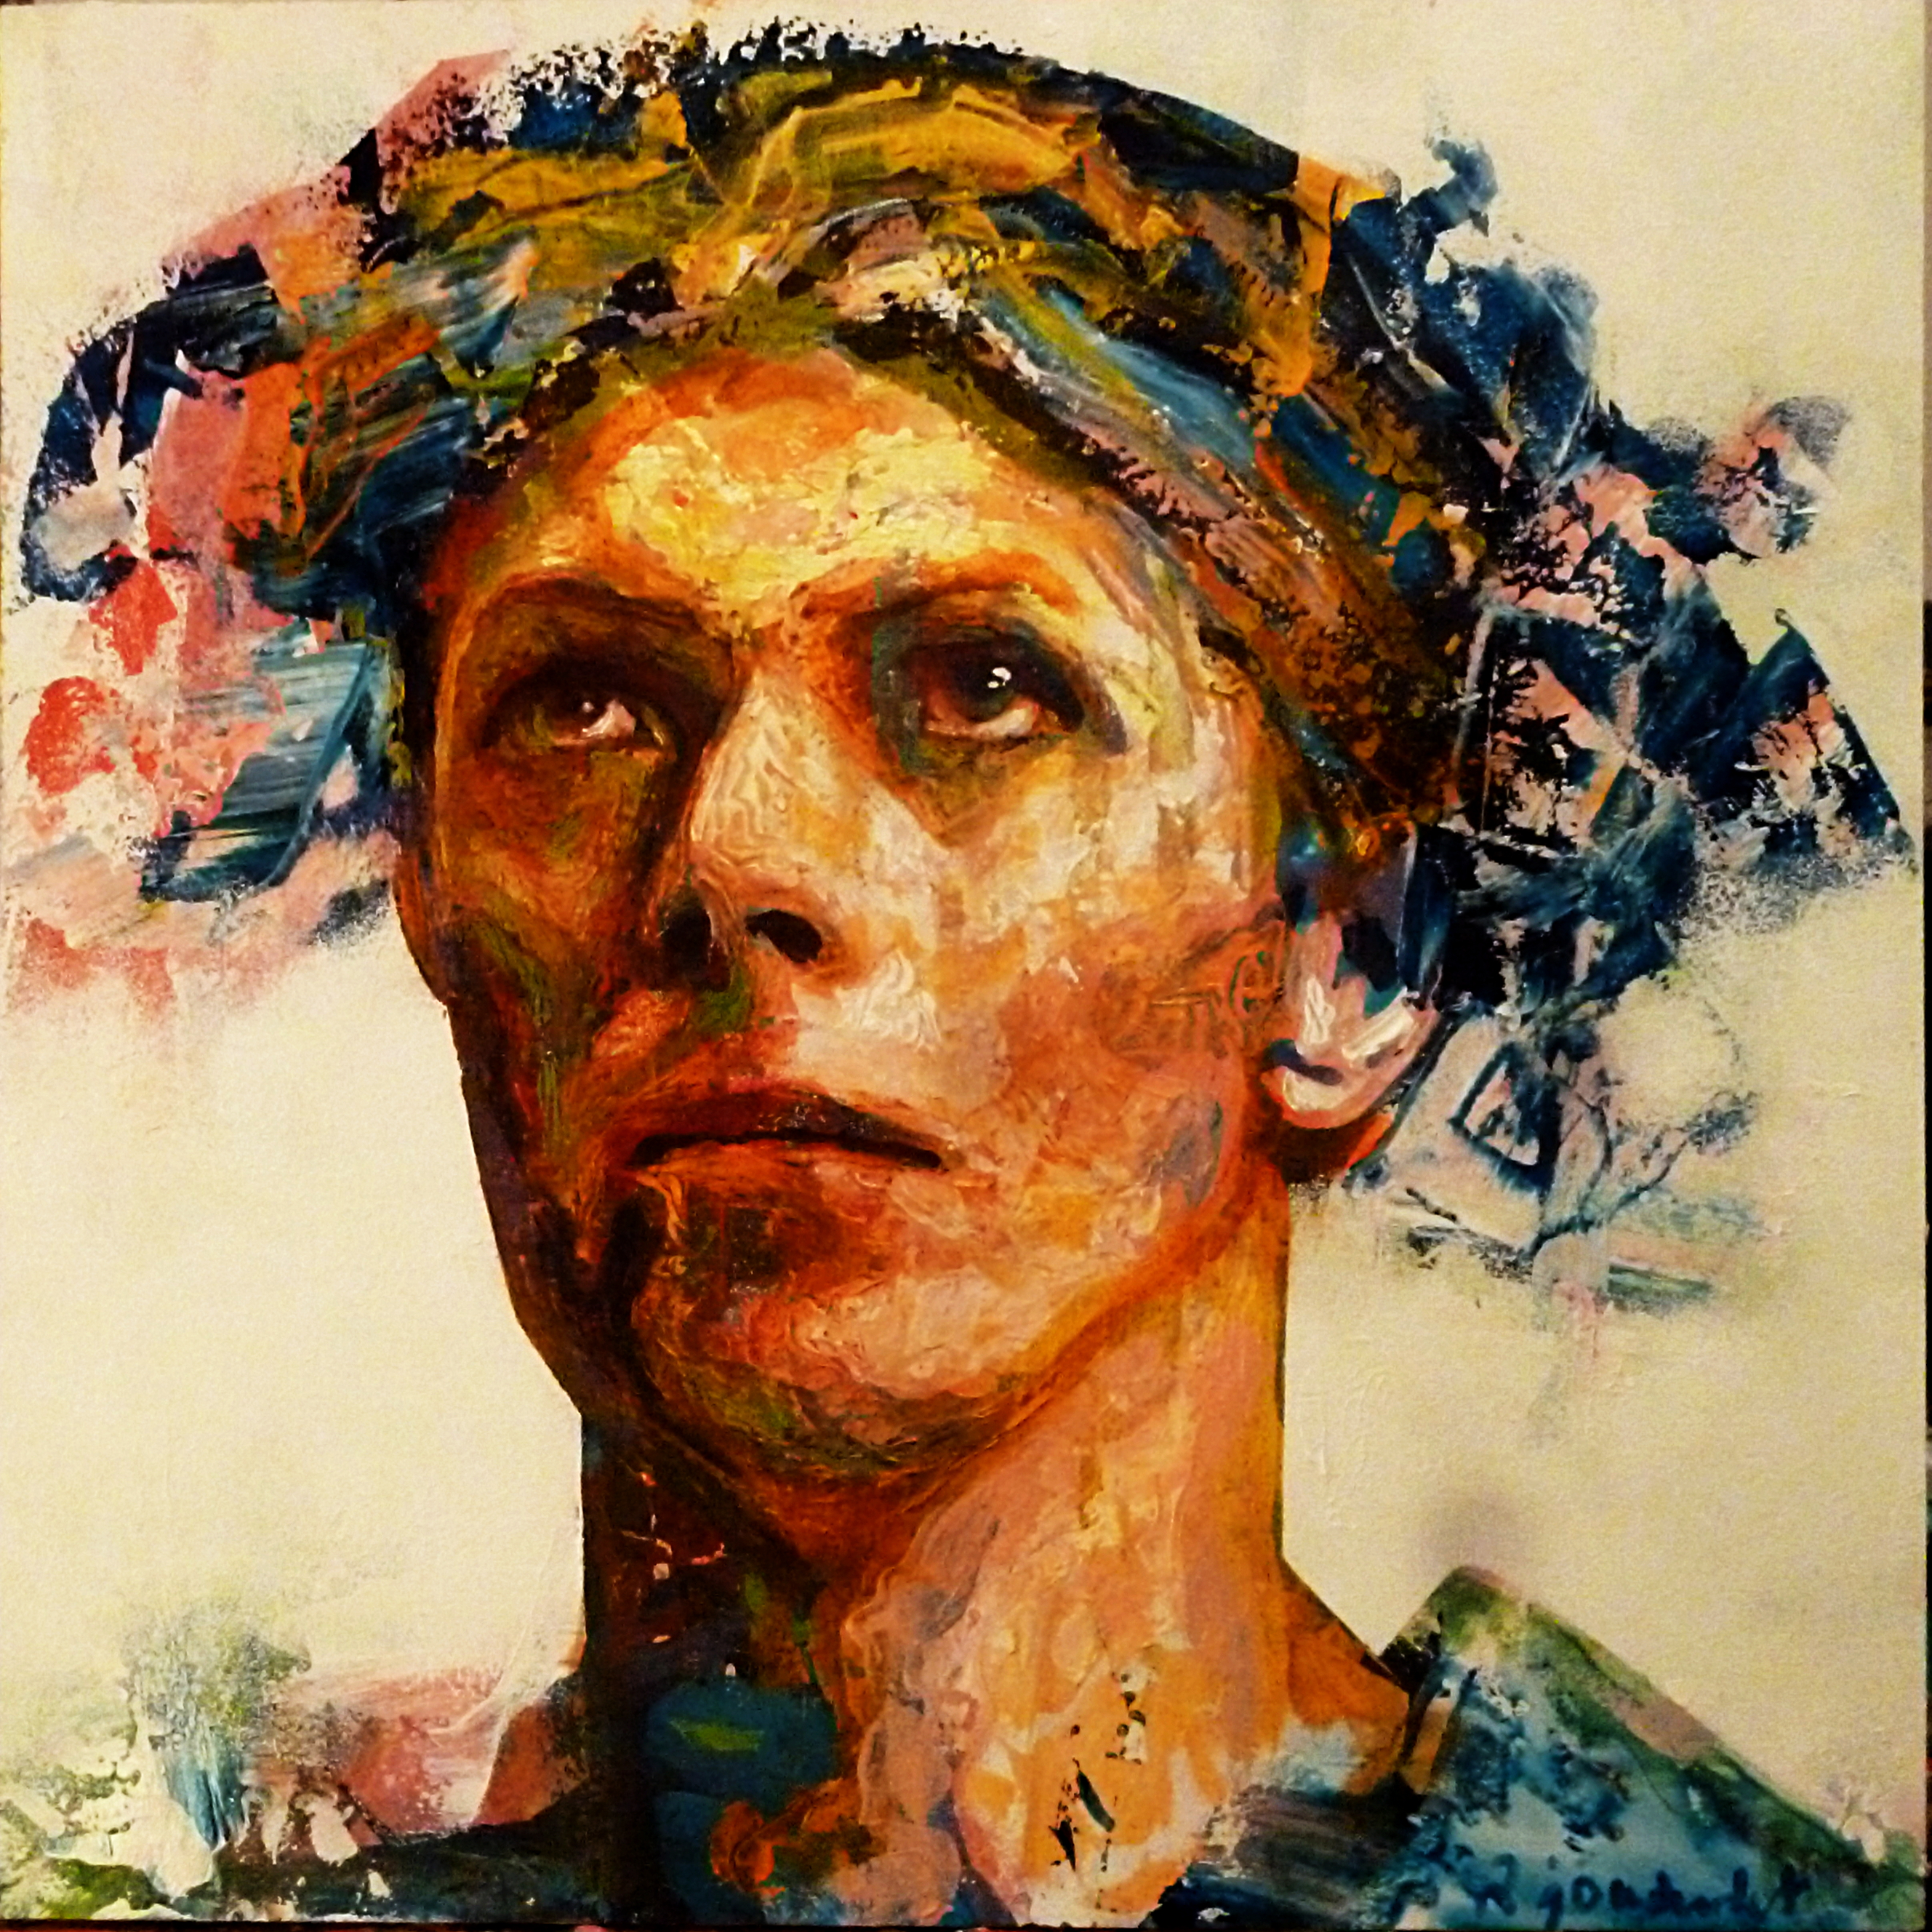 Ashes to ashes. David Bowie's portra